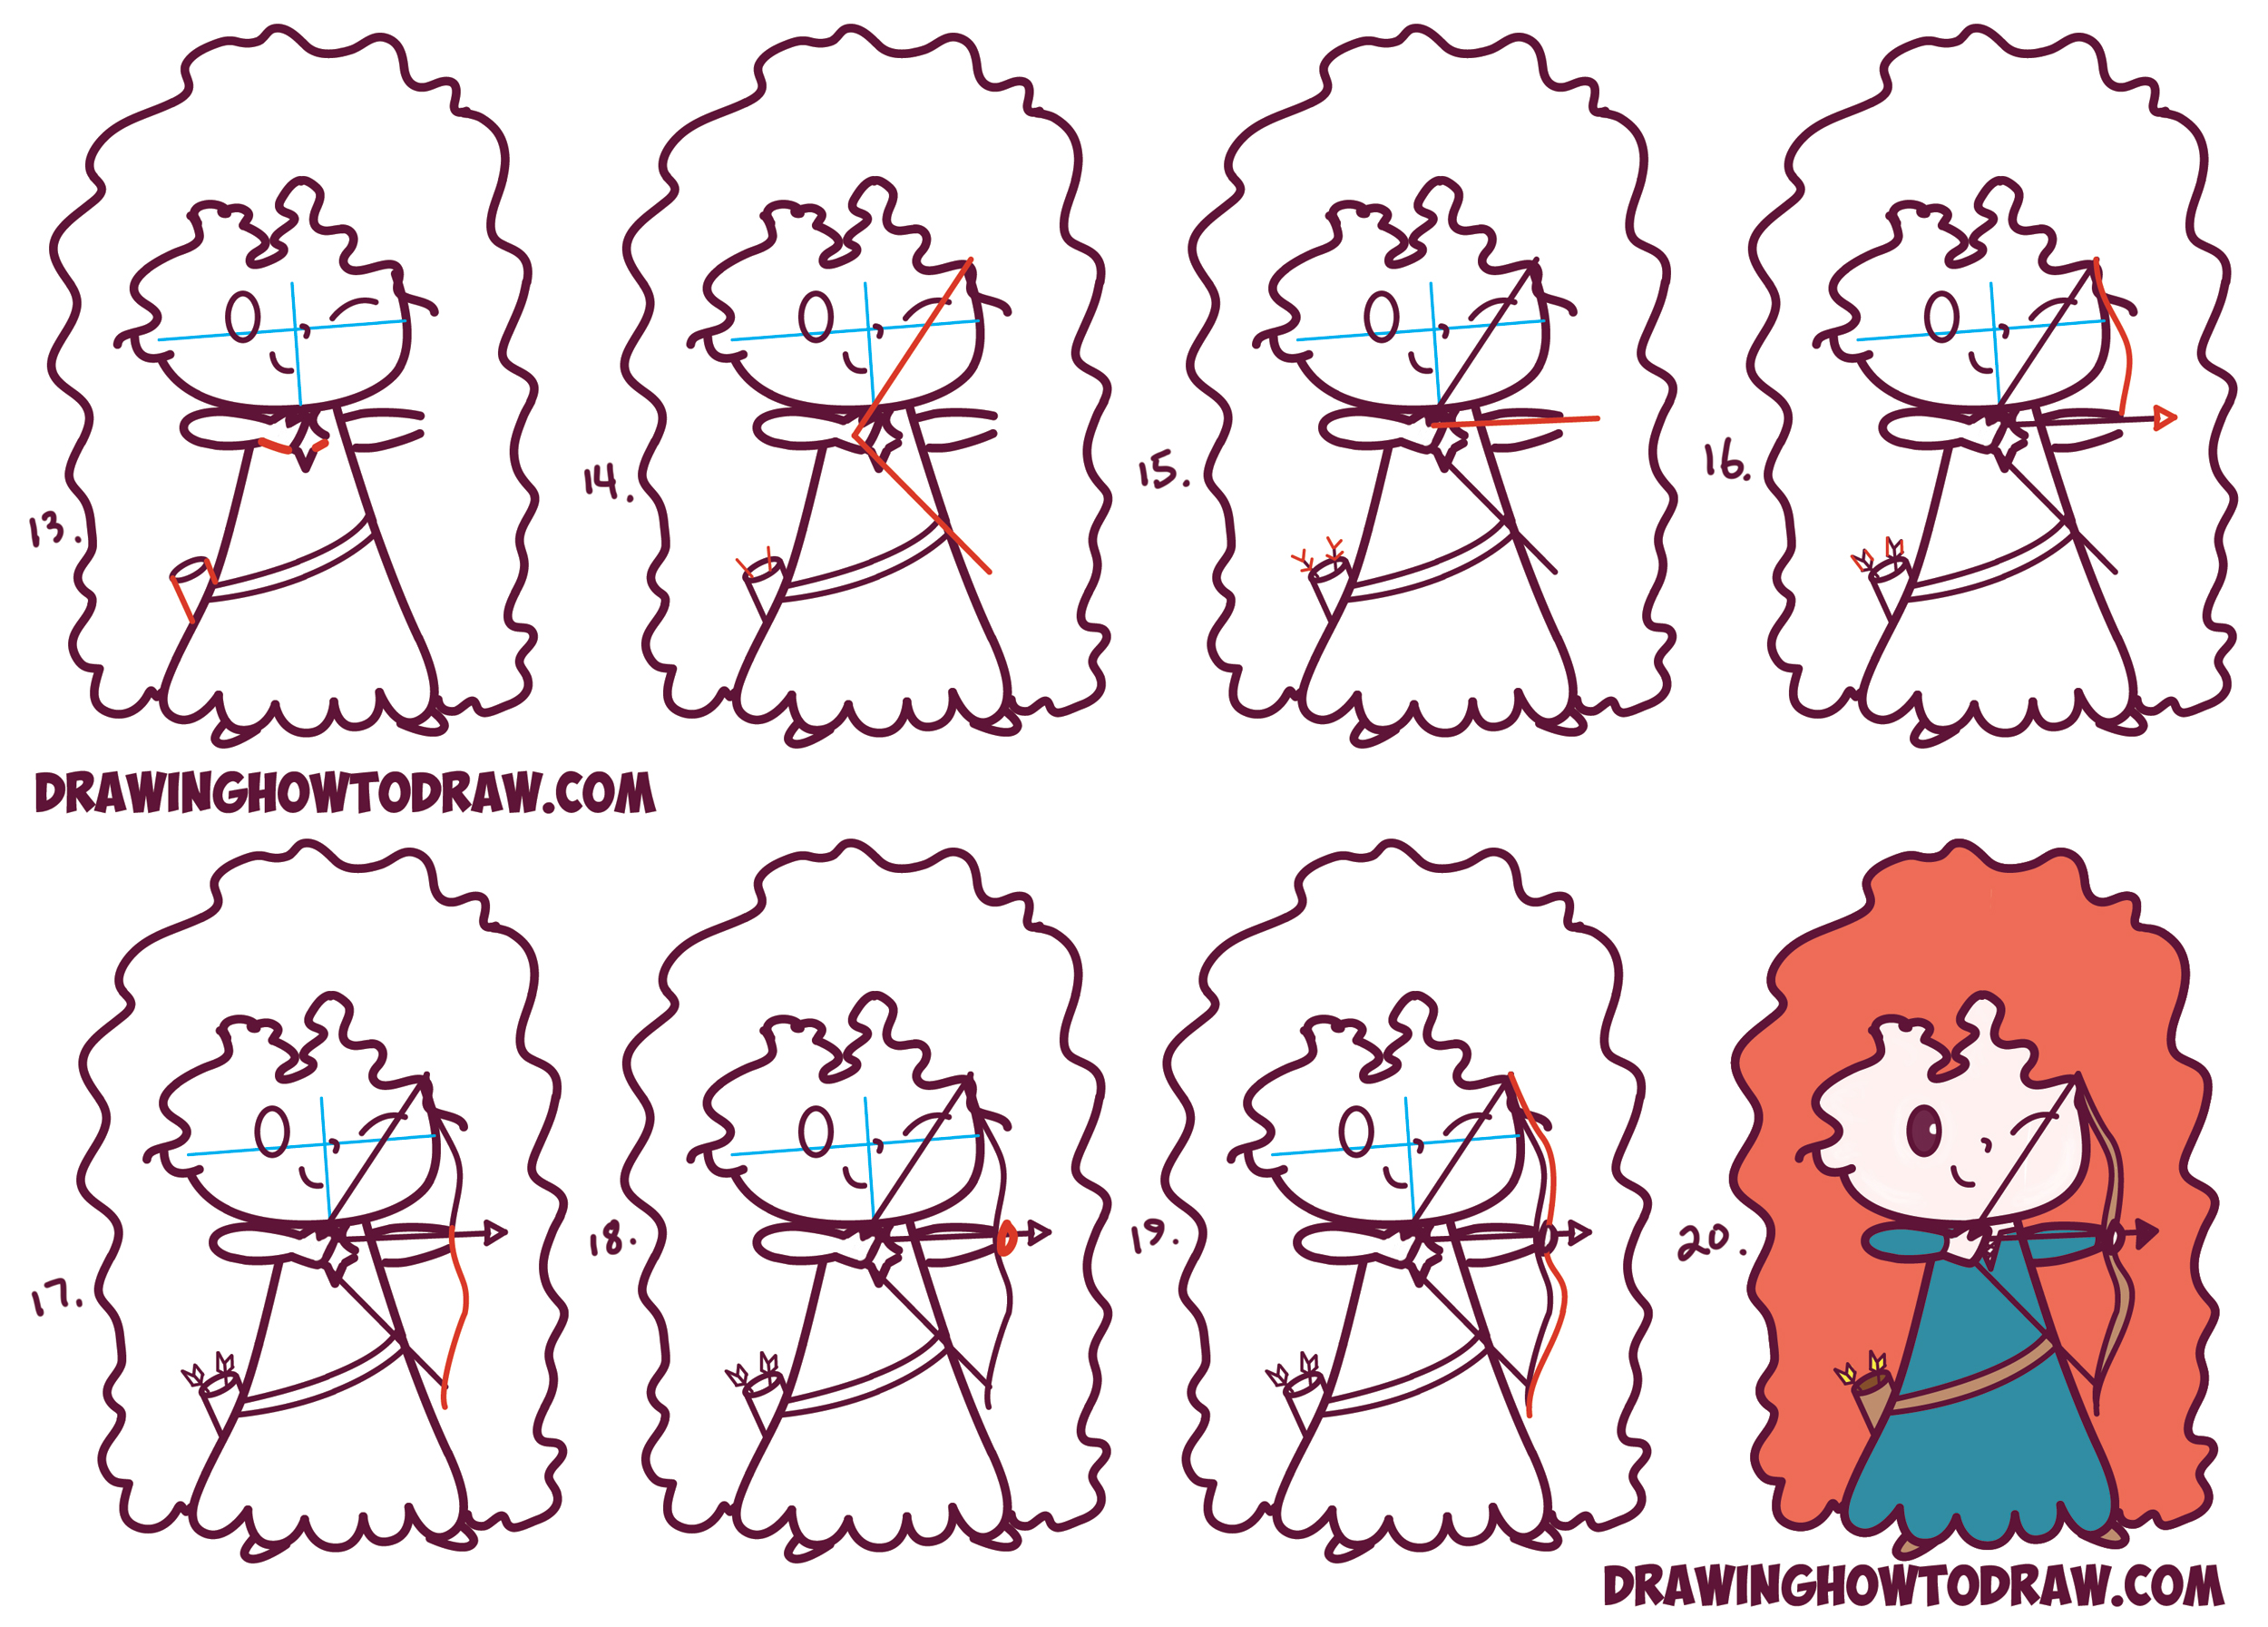 Learn How to Draw Cute Kawaii Chibi Merida from Disney Pixar's Brave in Simple Steps Drawing Lesson for Beginners